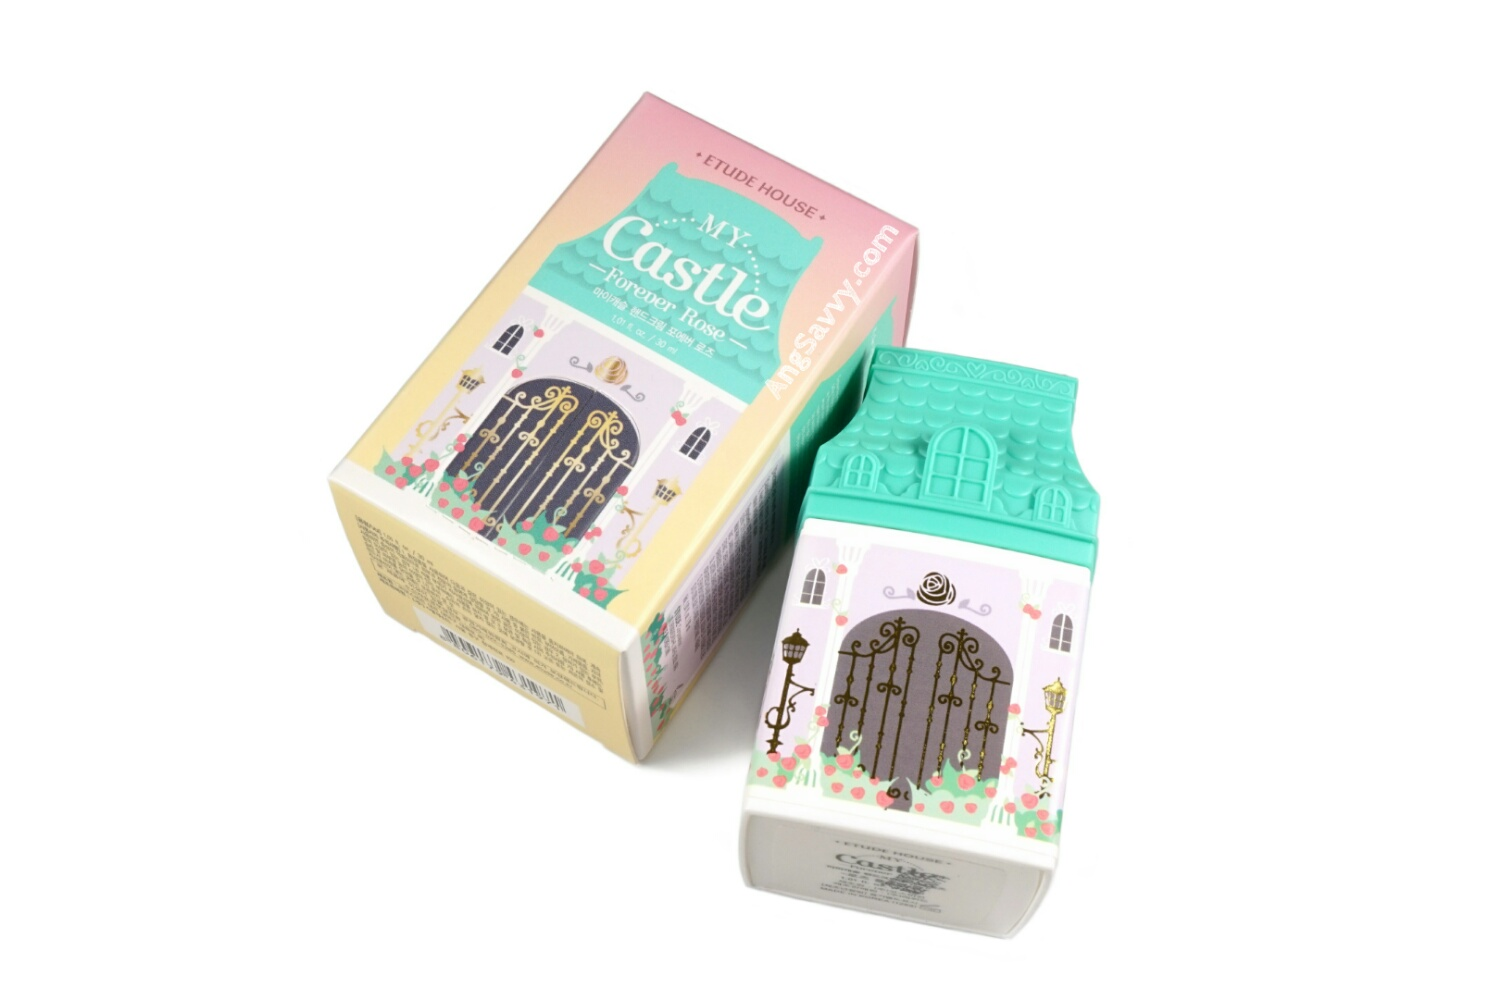 Etude House My Castle Hand Cream